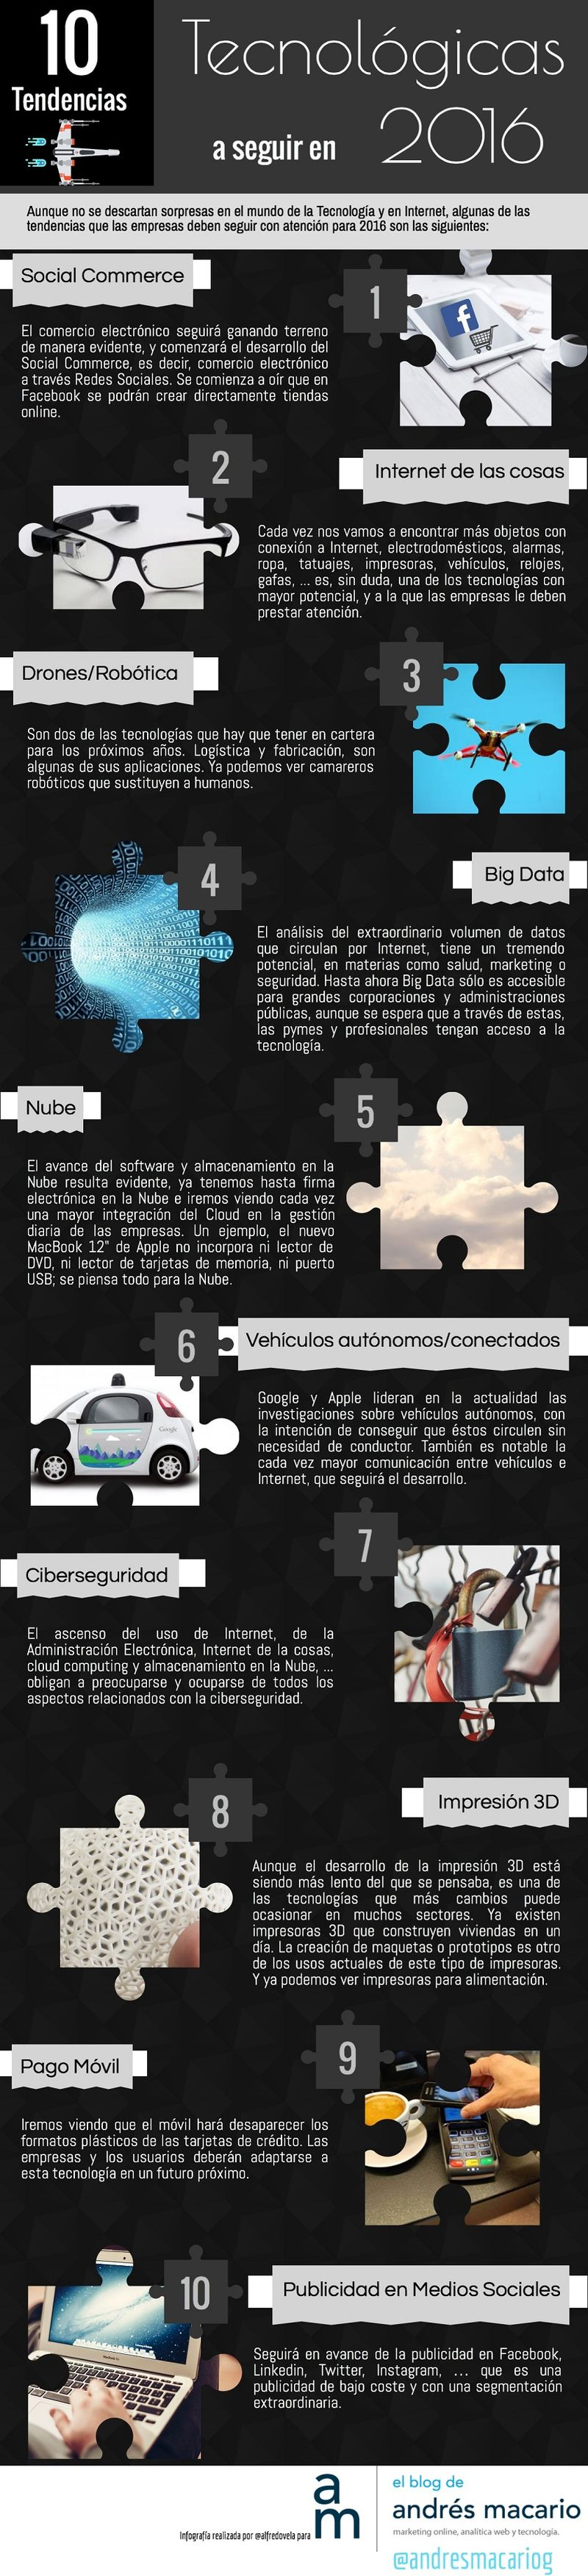 Tendencias Tecnologicas para 2016 2 ¿Conoces las 10 Tendencias Tecnológicas para 2016? (infografía)